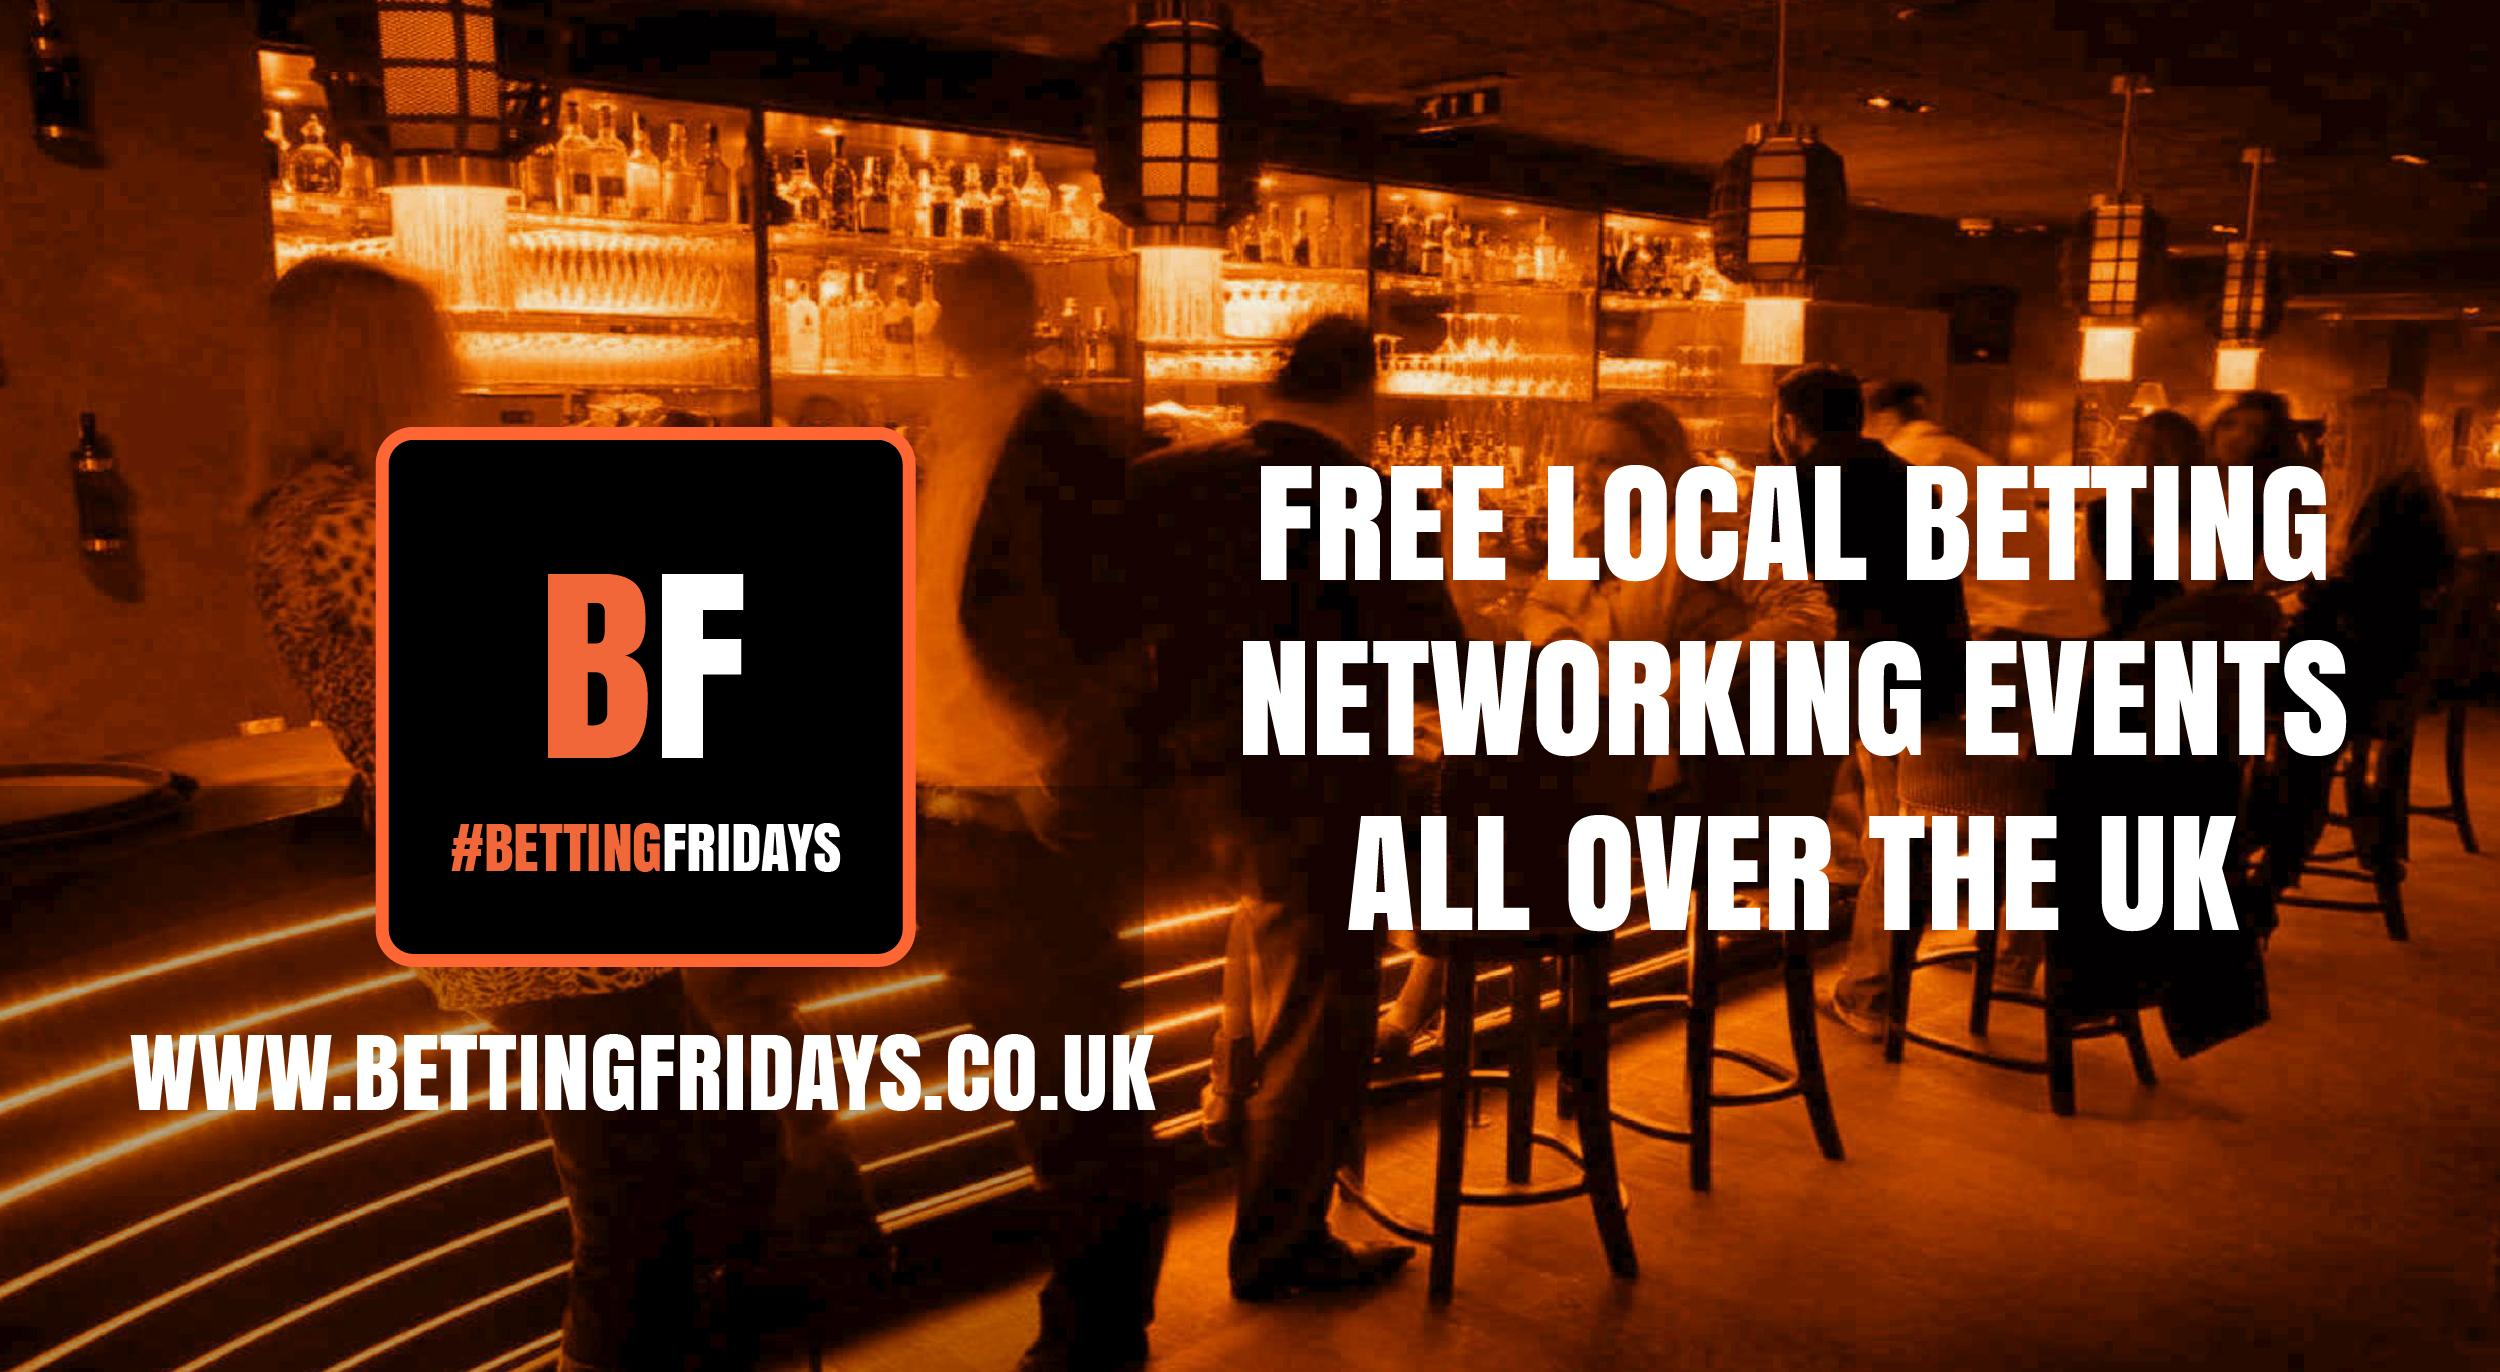 Betting Fridays! Free betting networking event in Mexborough